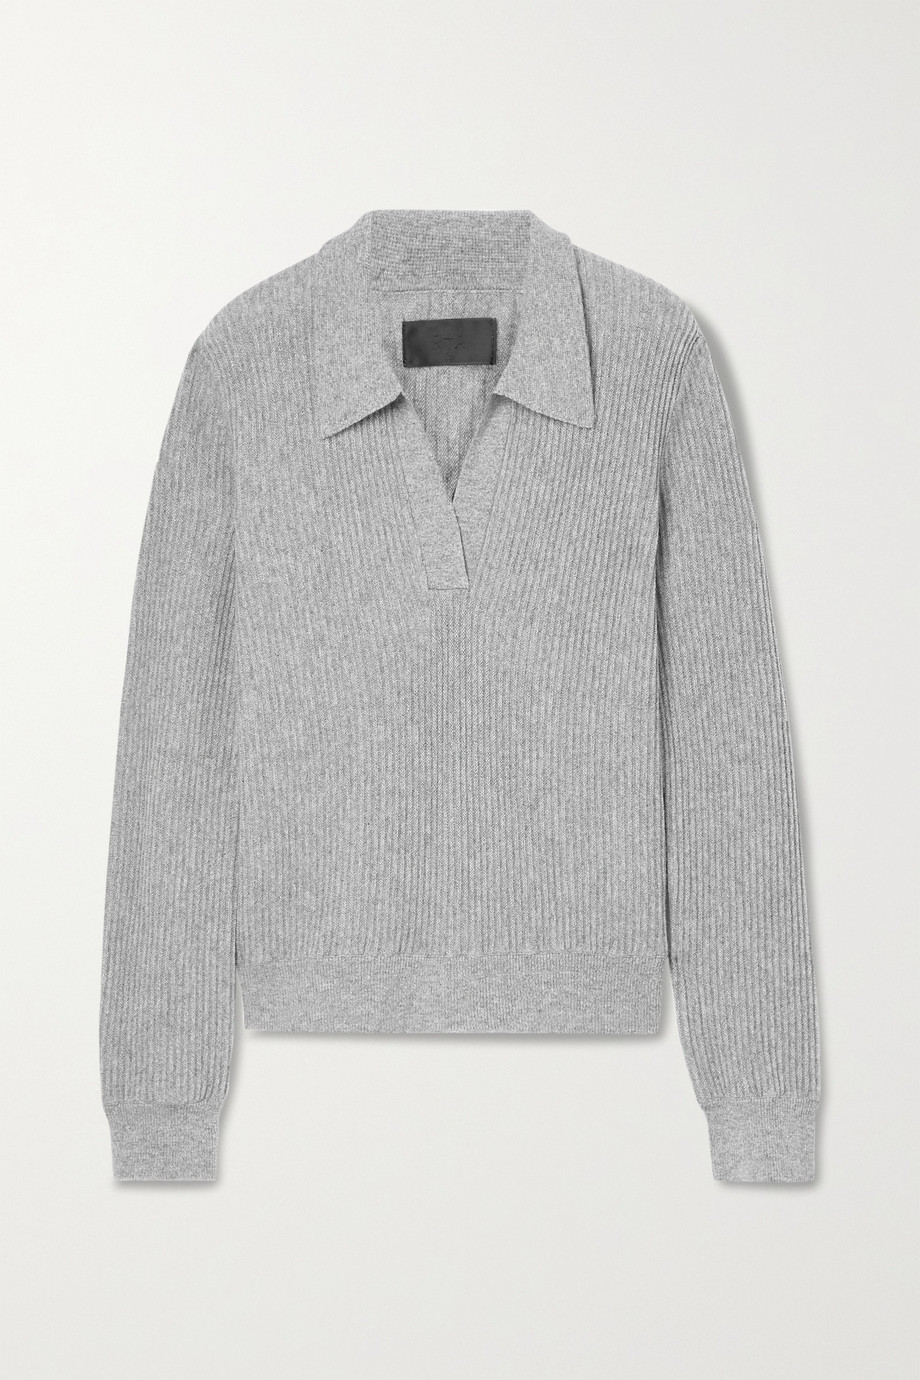 RTA Amalia ribbed cashmere sweater